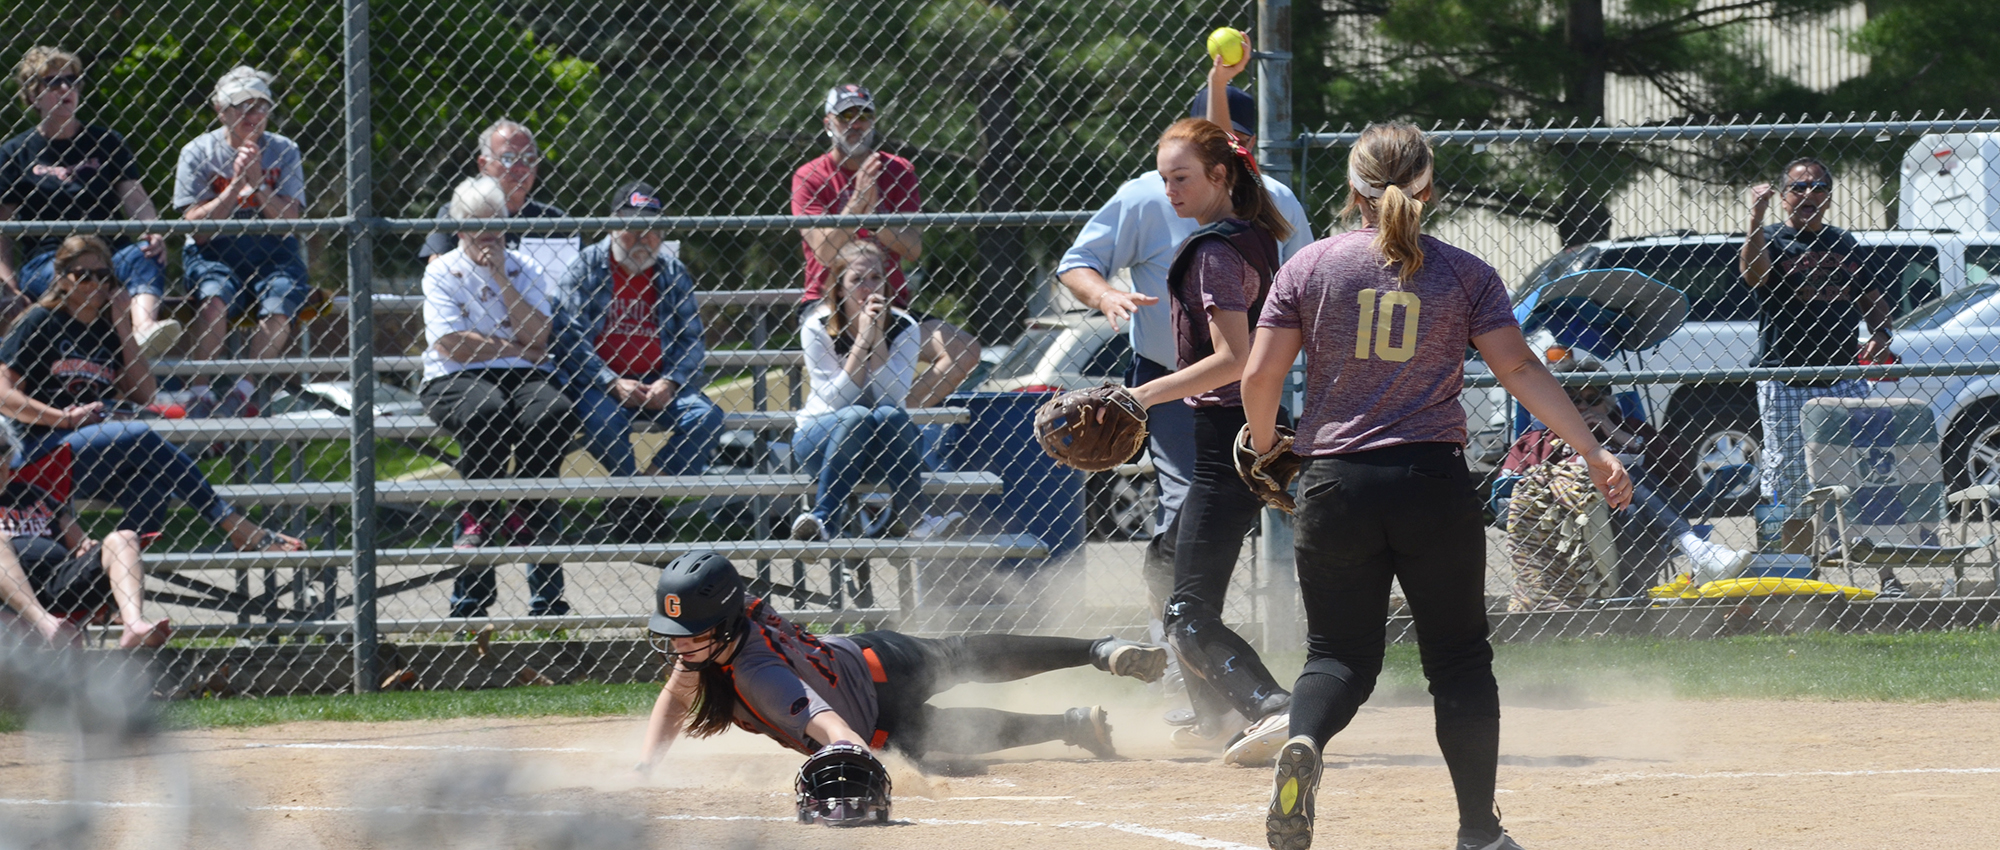 Greenville Halts Red Devils' Win Streak With Sweep